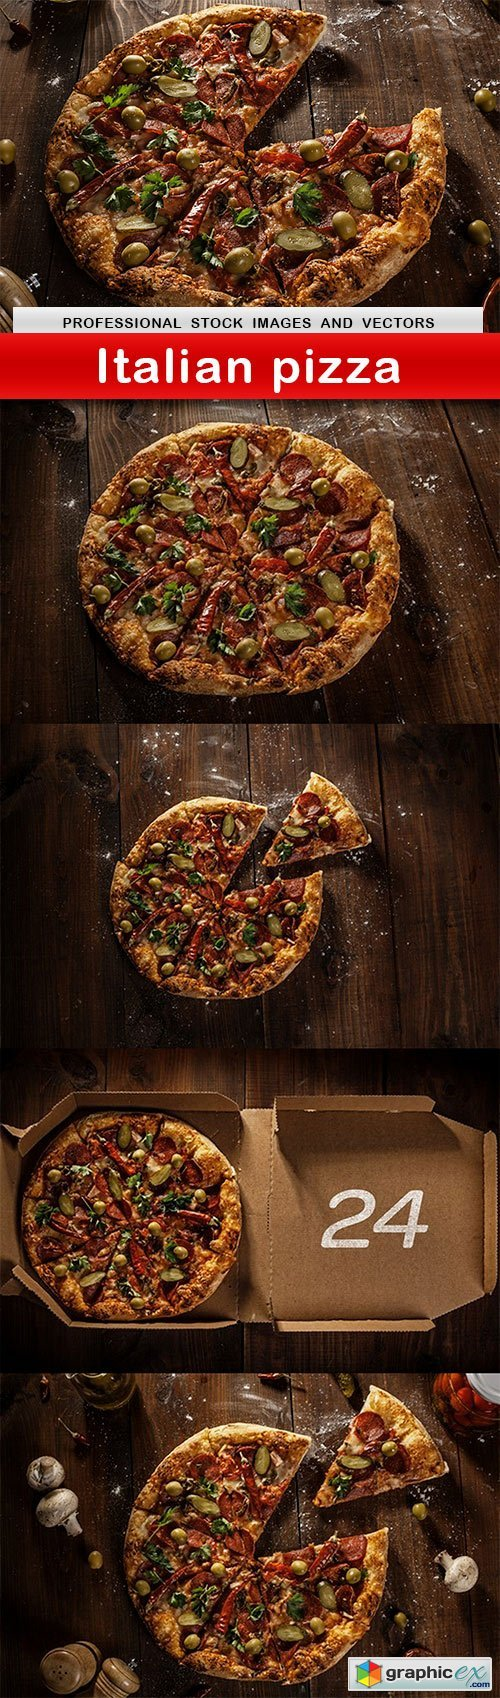 Italian pizza - 5 UHQ JPEG